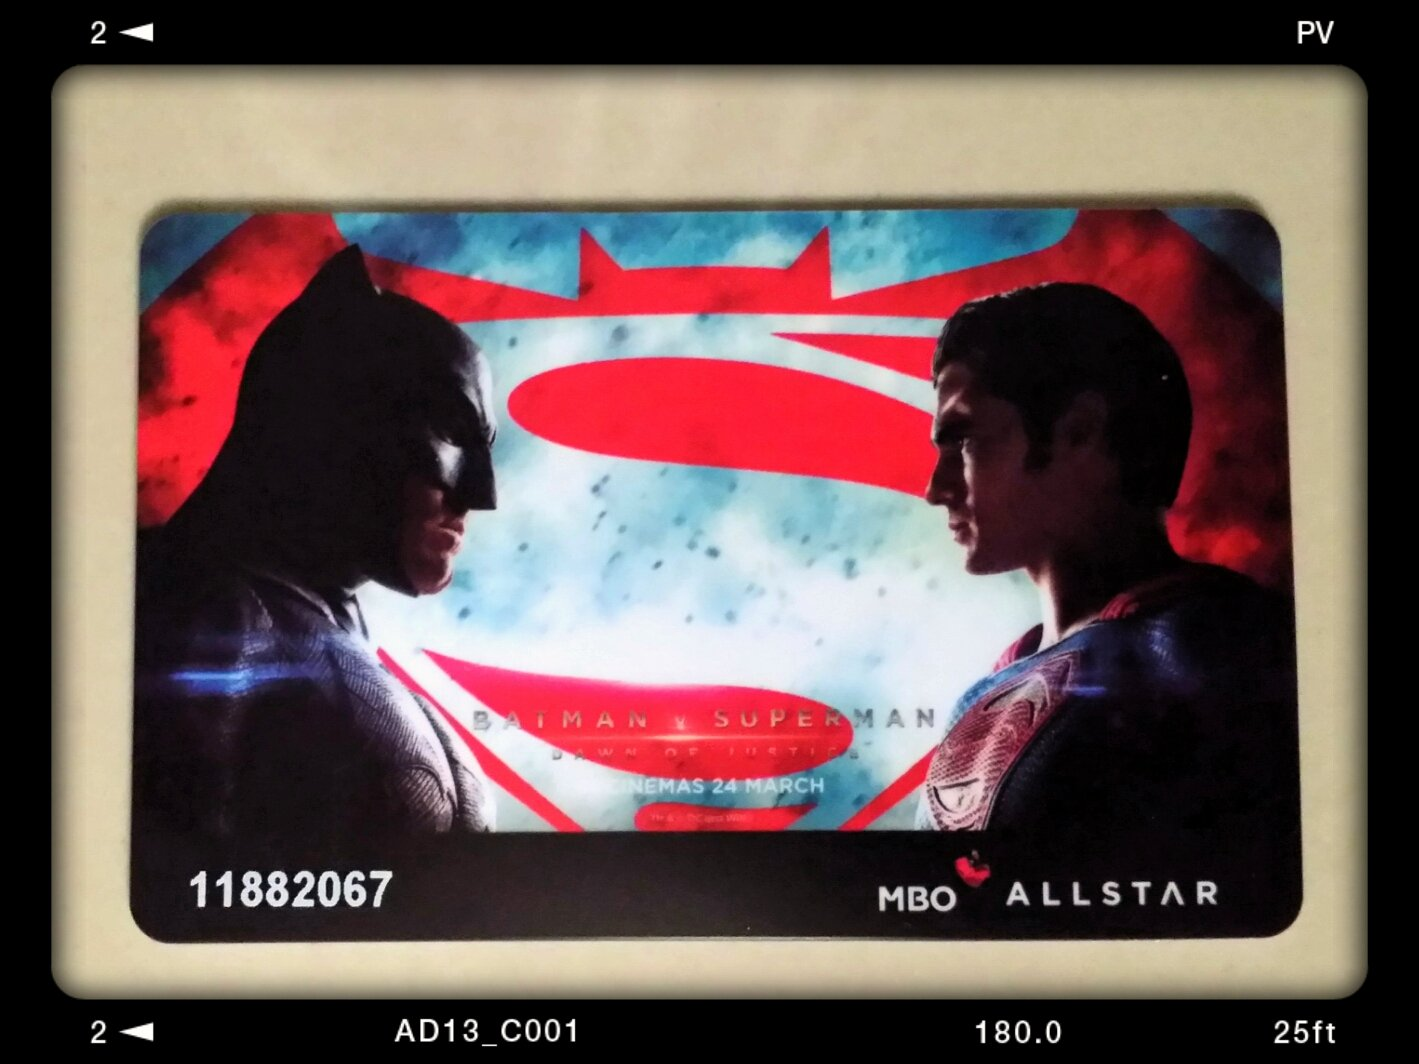 MBO Cinemas' Batman vs Superman: Dawn of Justice special edition membership card